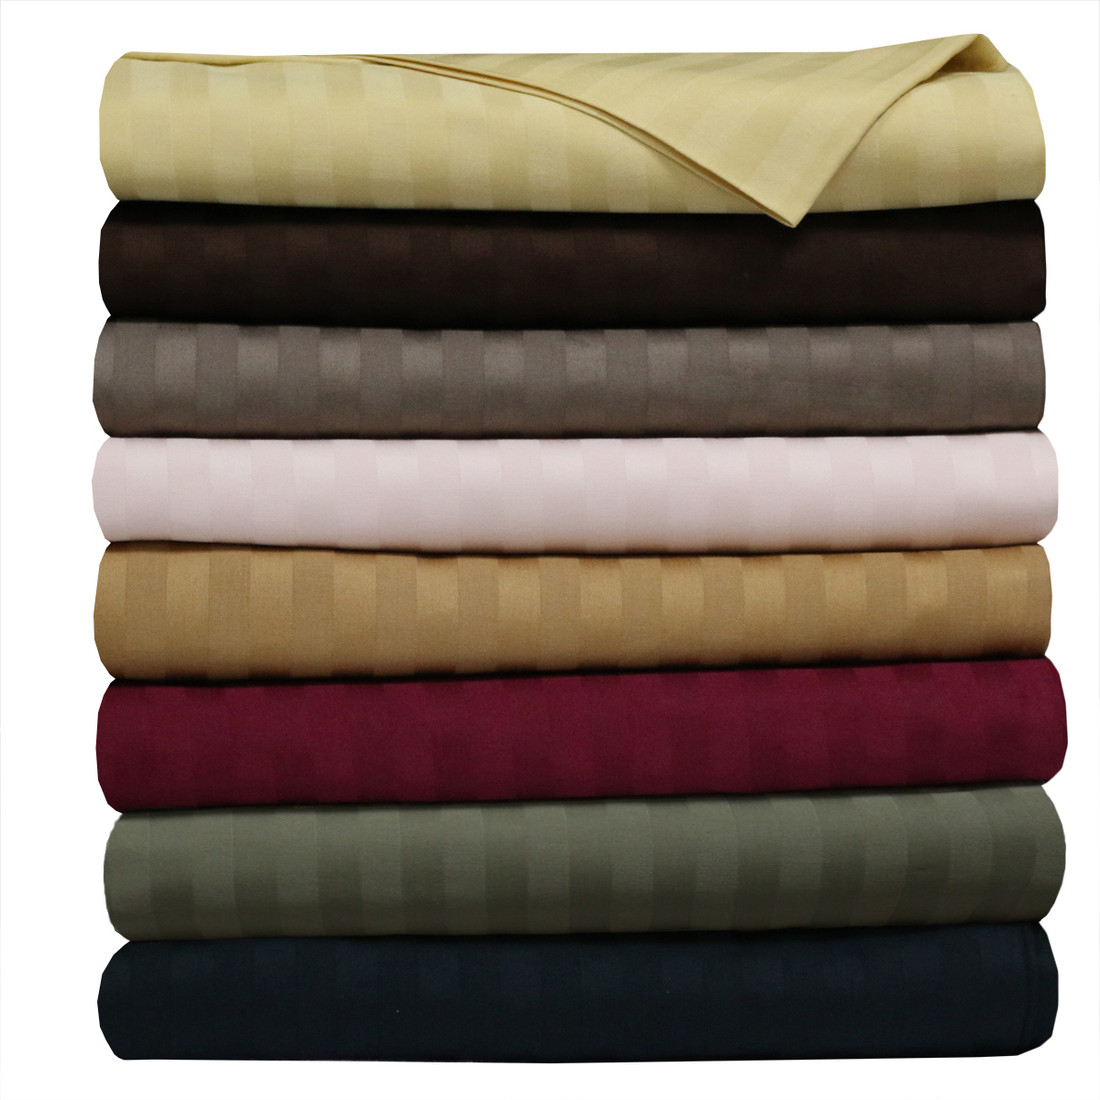 Royal 500 thread count 100 cotton sheet sets striped for What is thread count in sheets